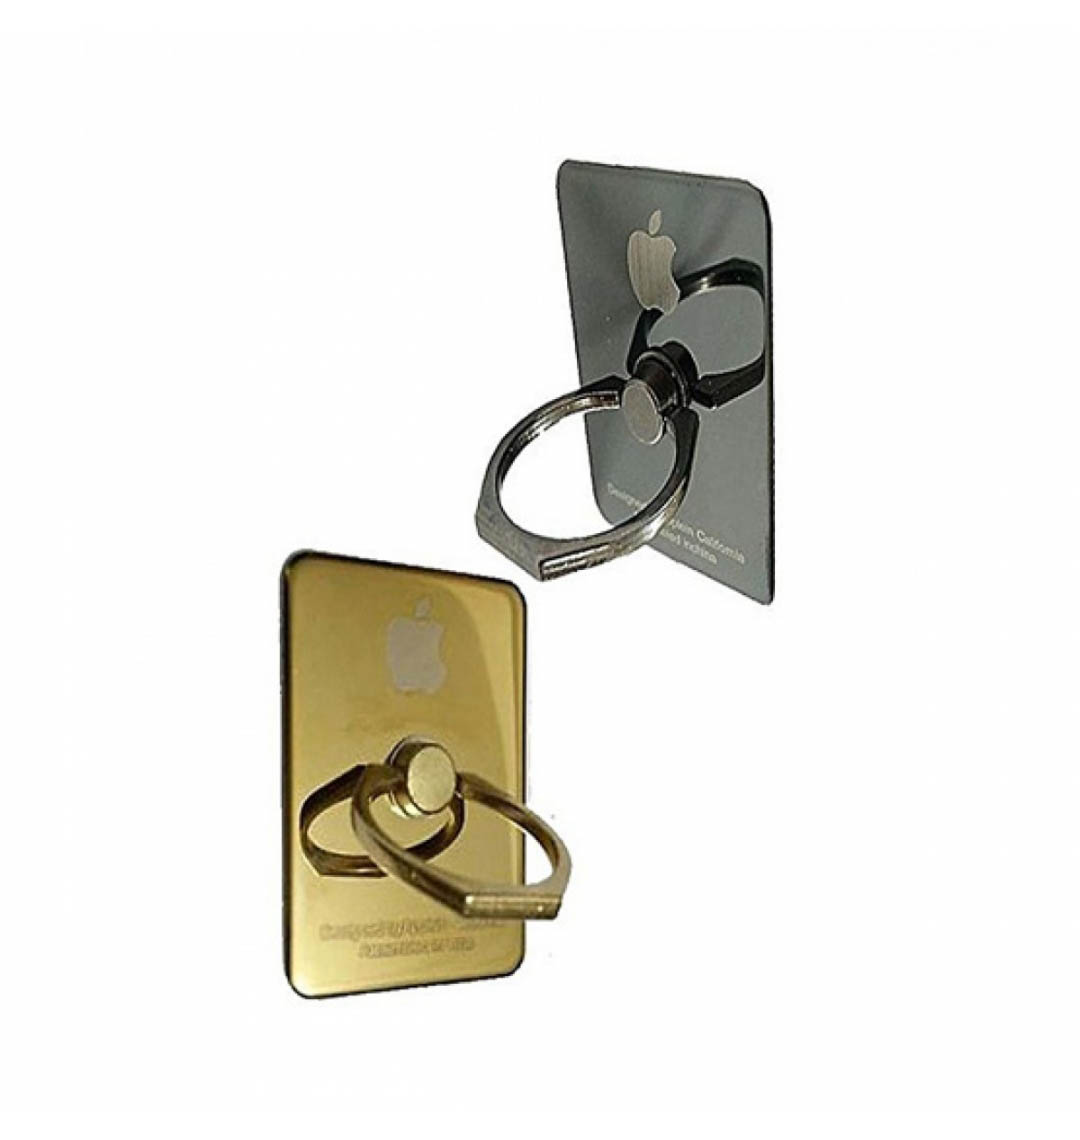 Stainless Steel Mobile Ring Holder (Gold) Iphone